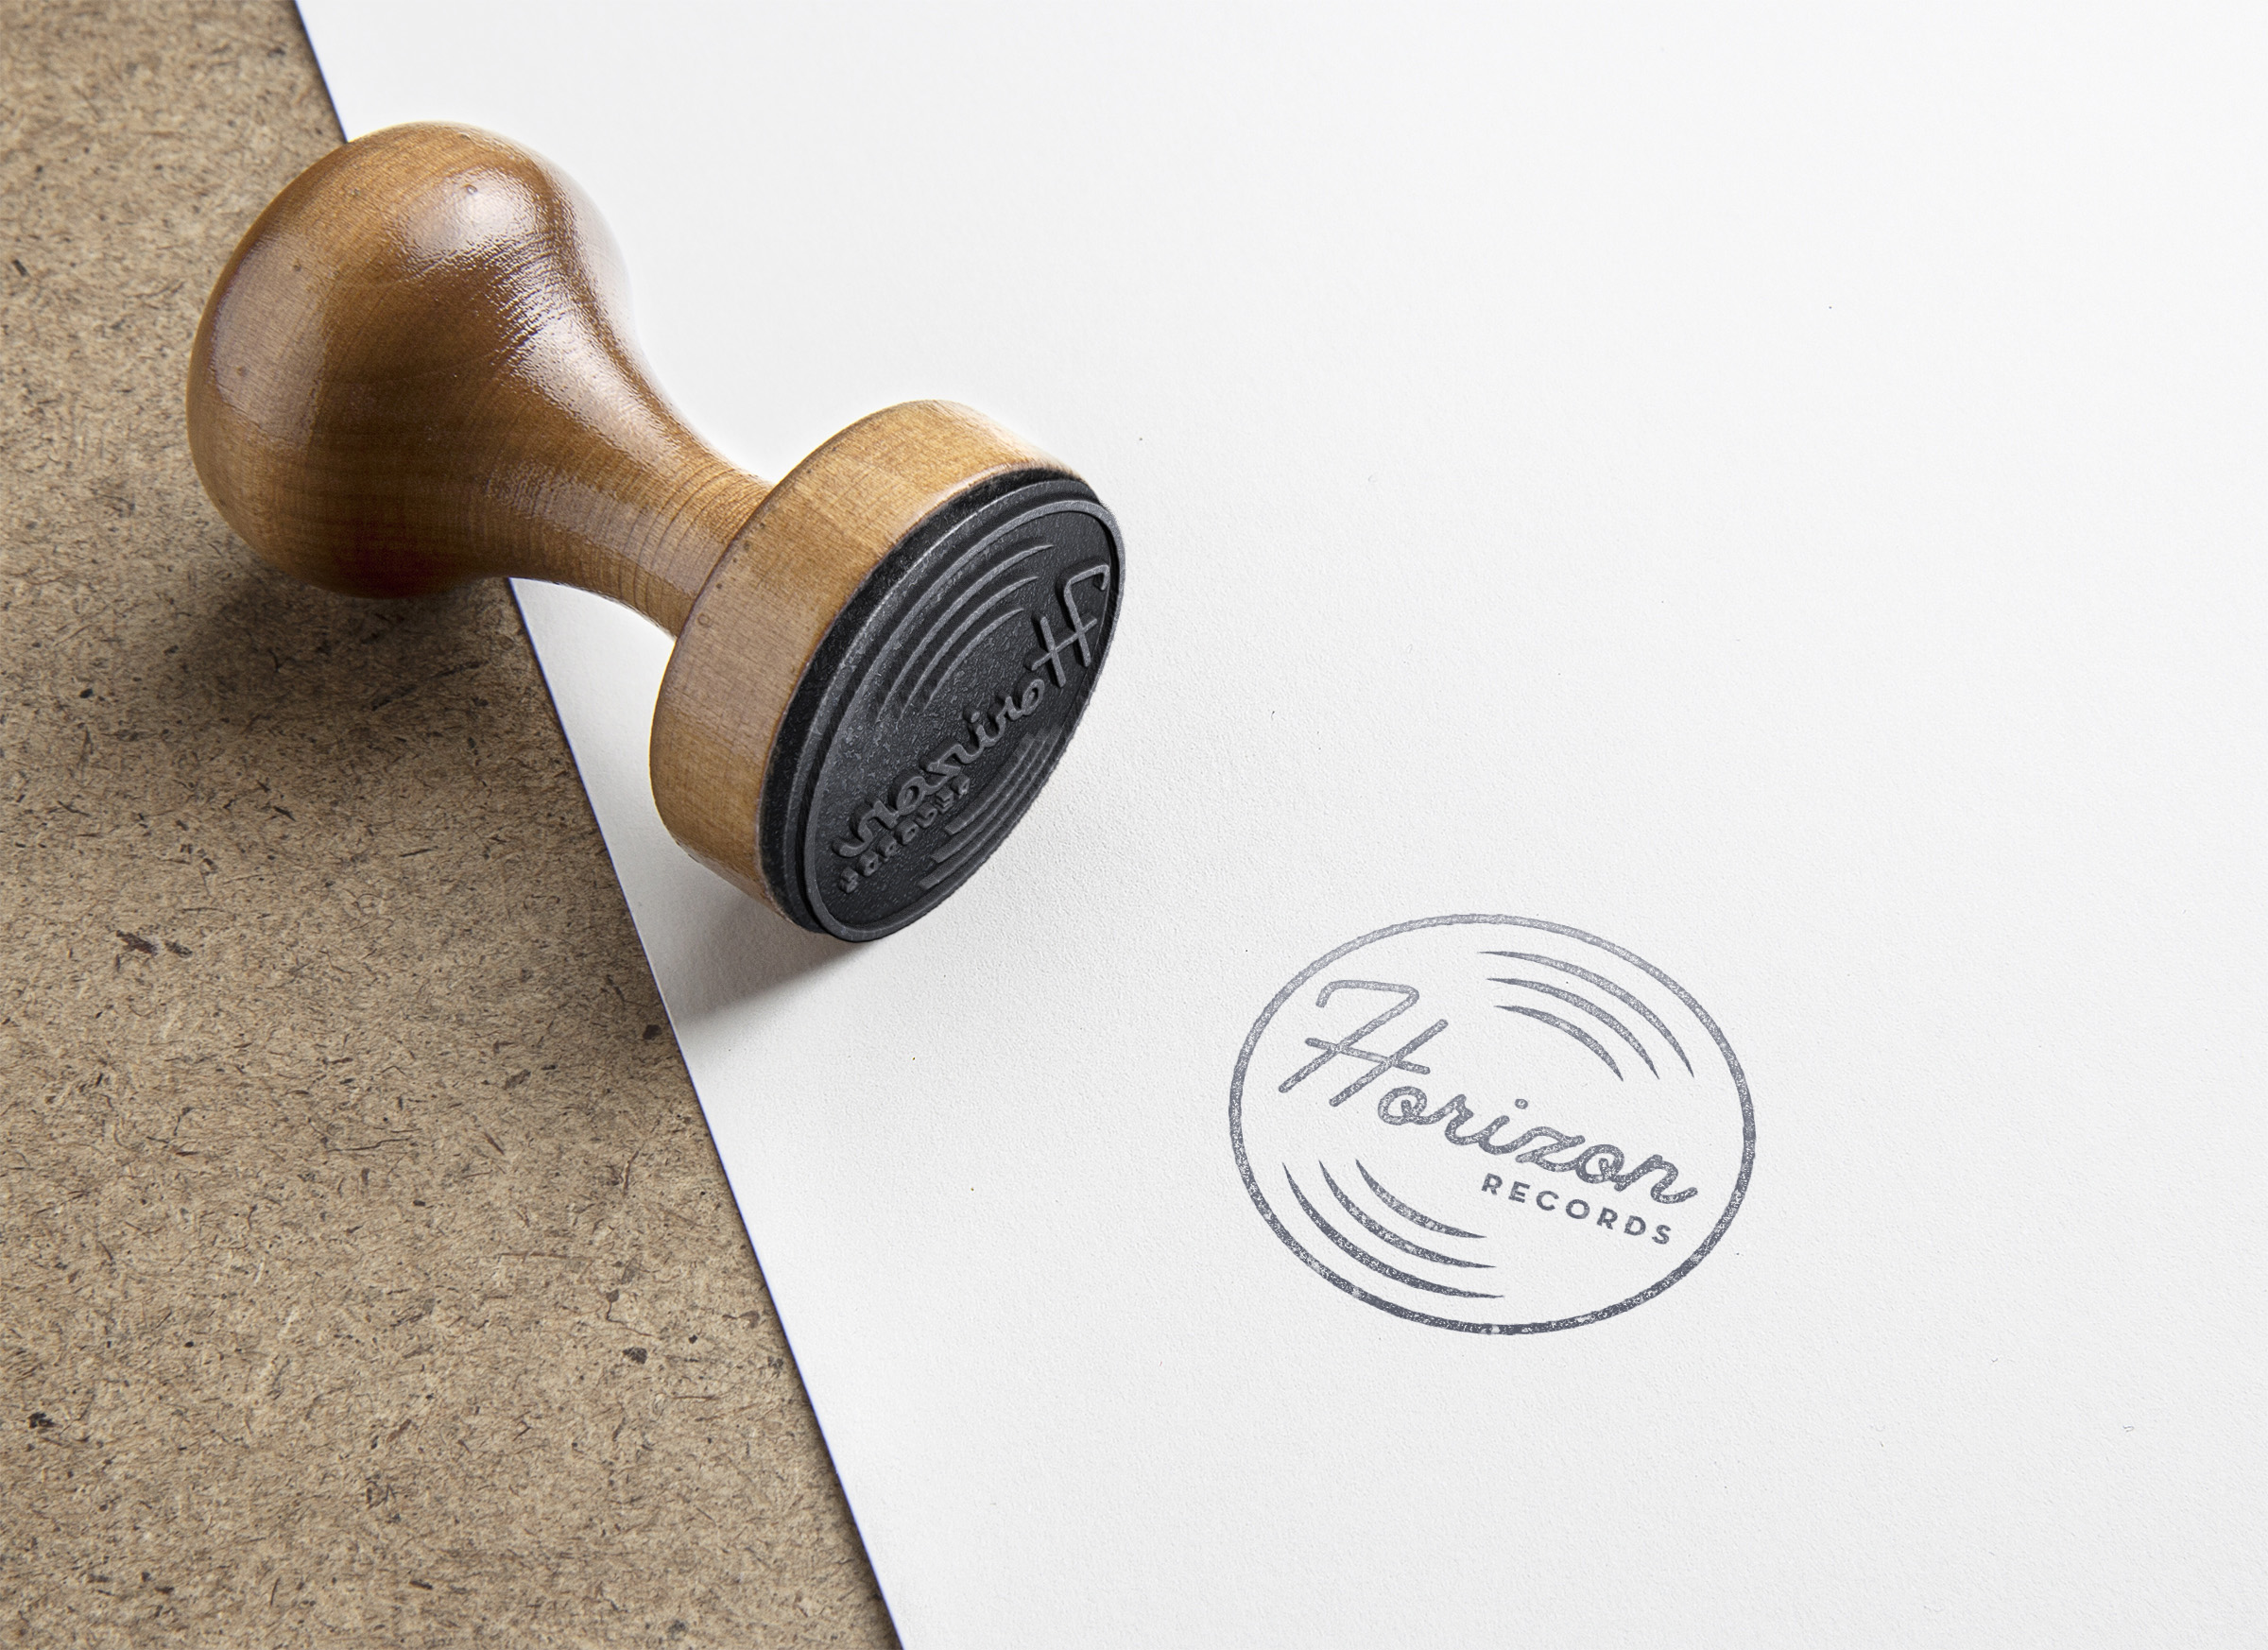 HR Rubber Stamp Mockup.jpg